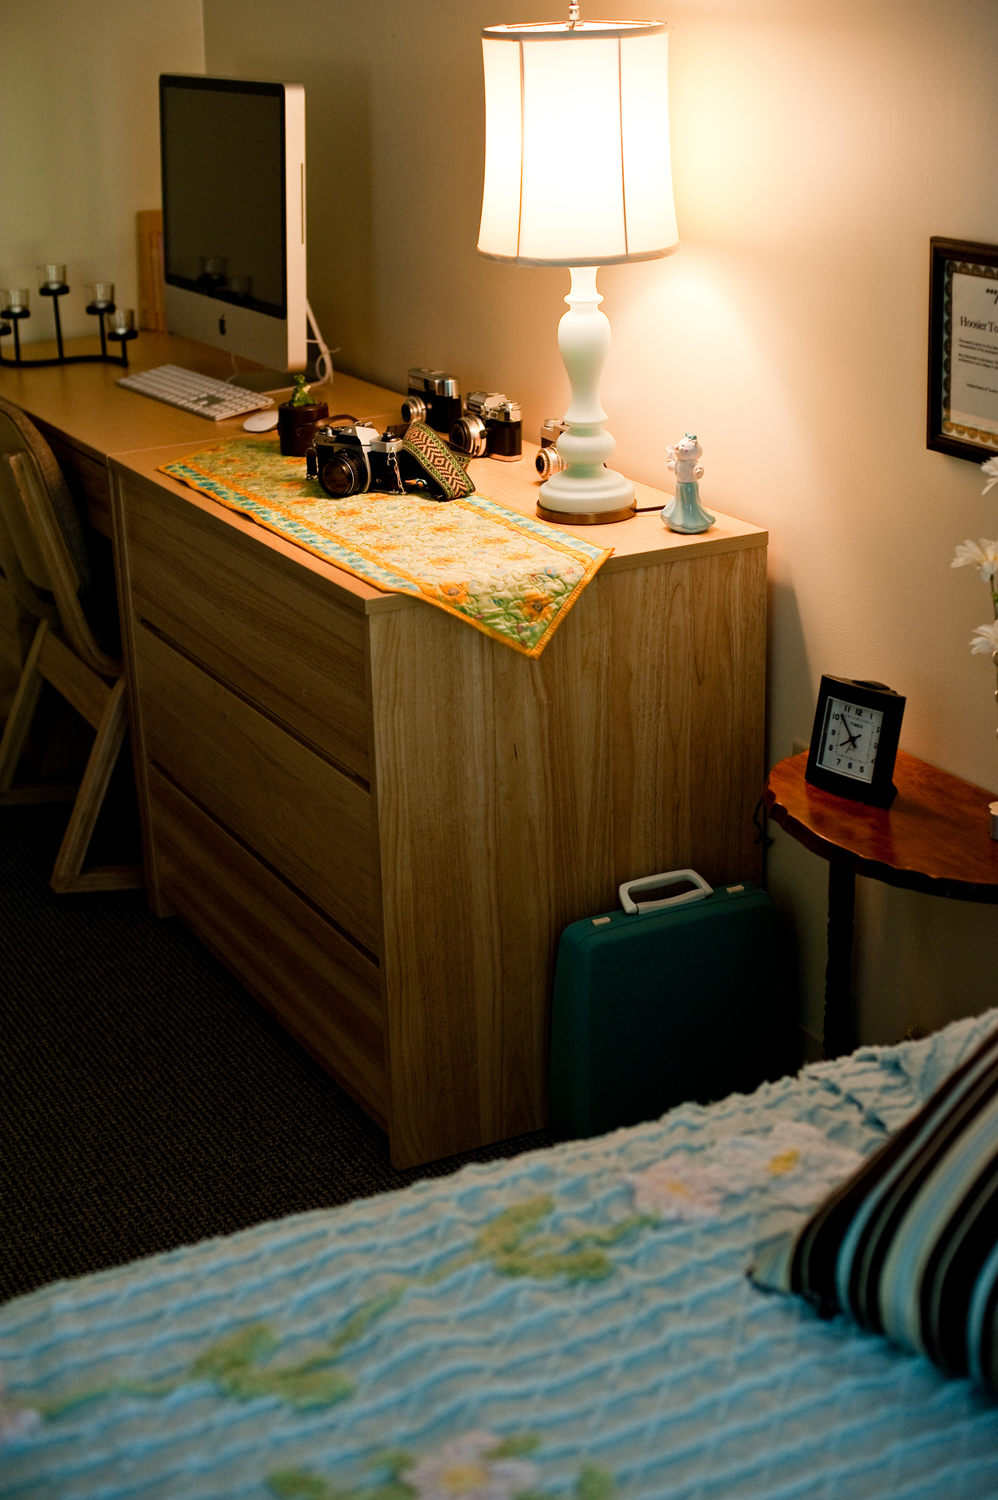 Another, wider-angle view of Amy's room